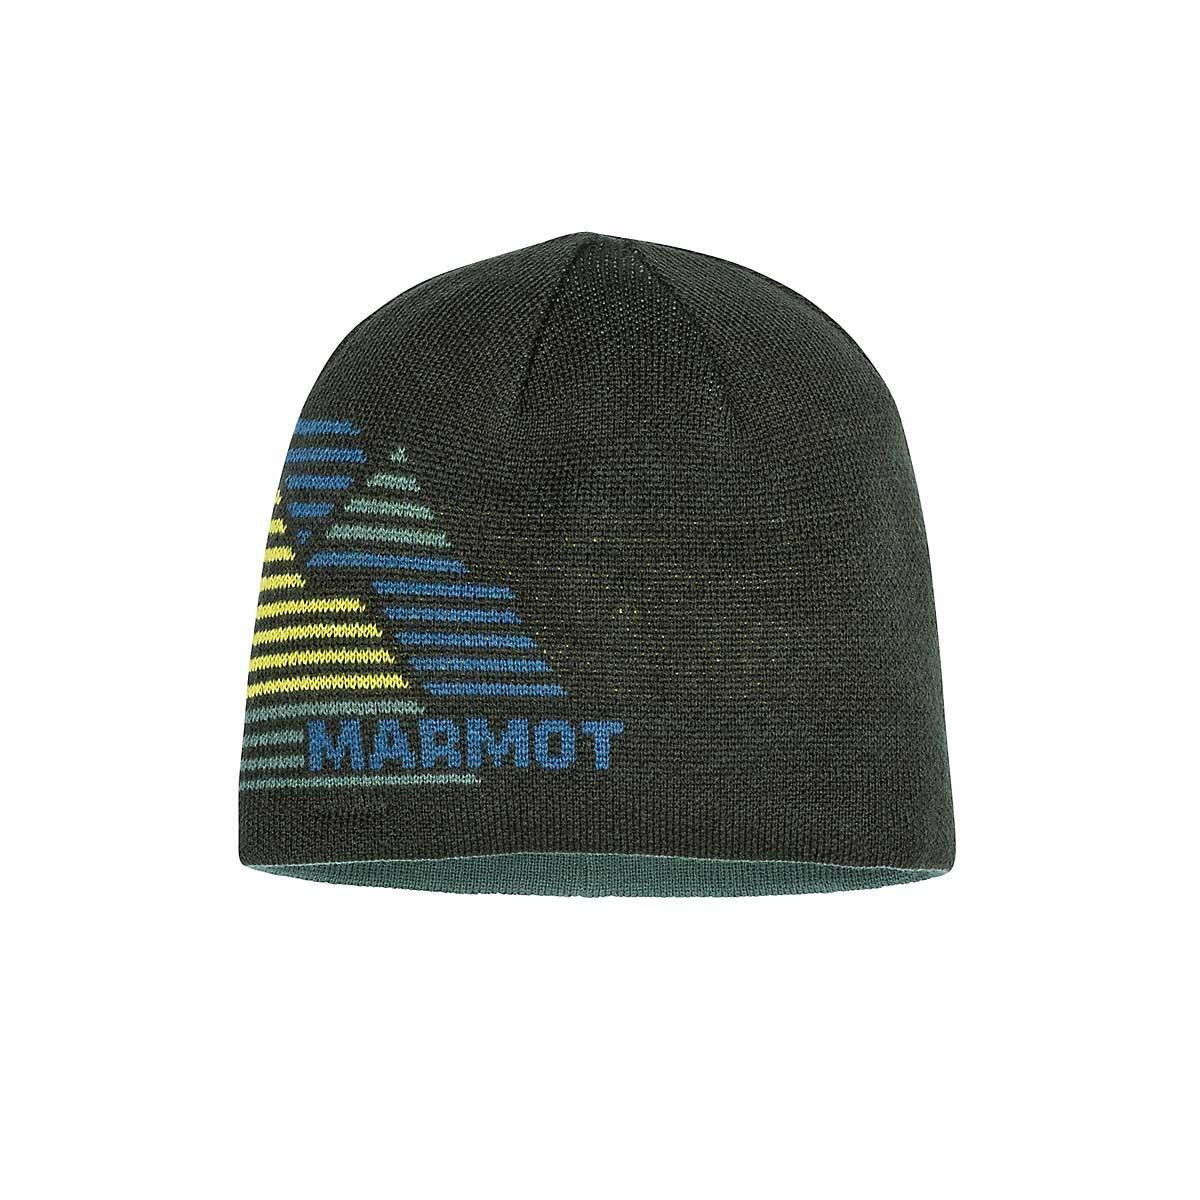 Marmot Boys' Novelty Reversible Beanie in Rosin Green